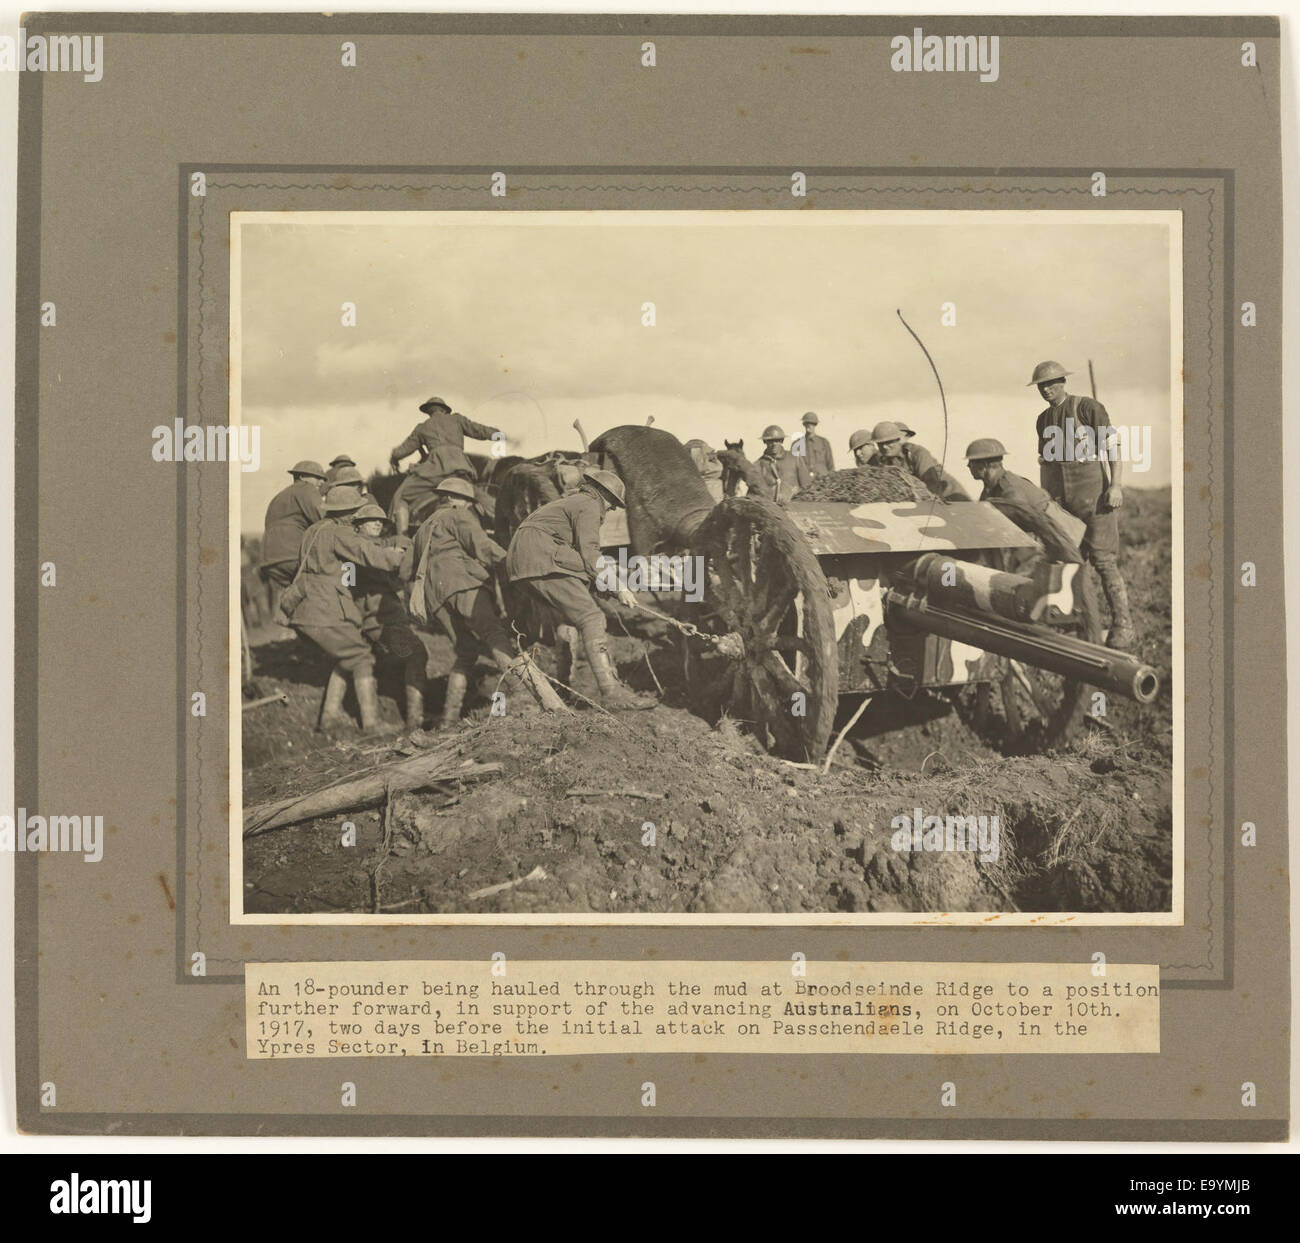 374d851c89bd0 18-pounder being hauled through the mud at Broodseinde Ridge ... two days  before the initial attack on Passchendaele Ridge